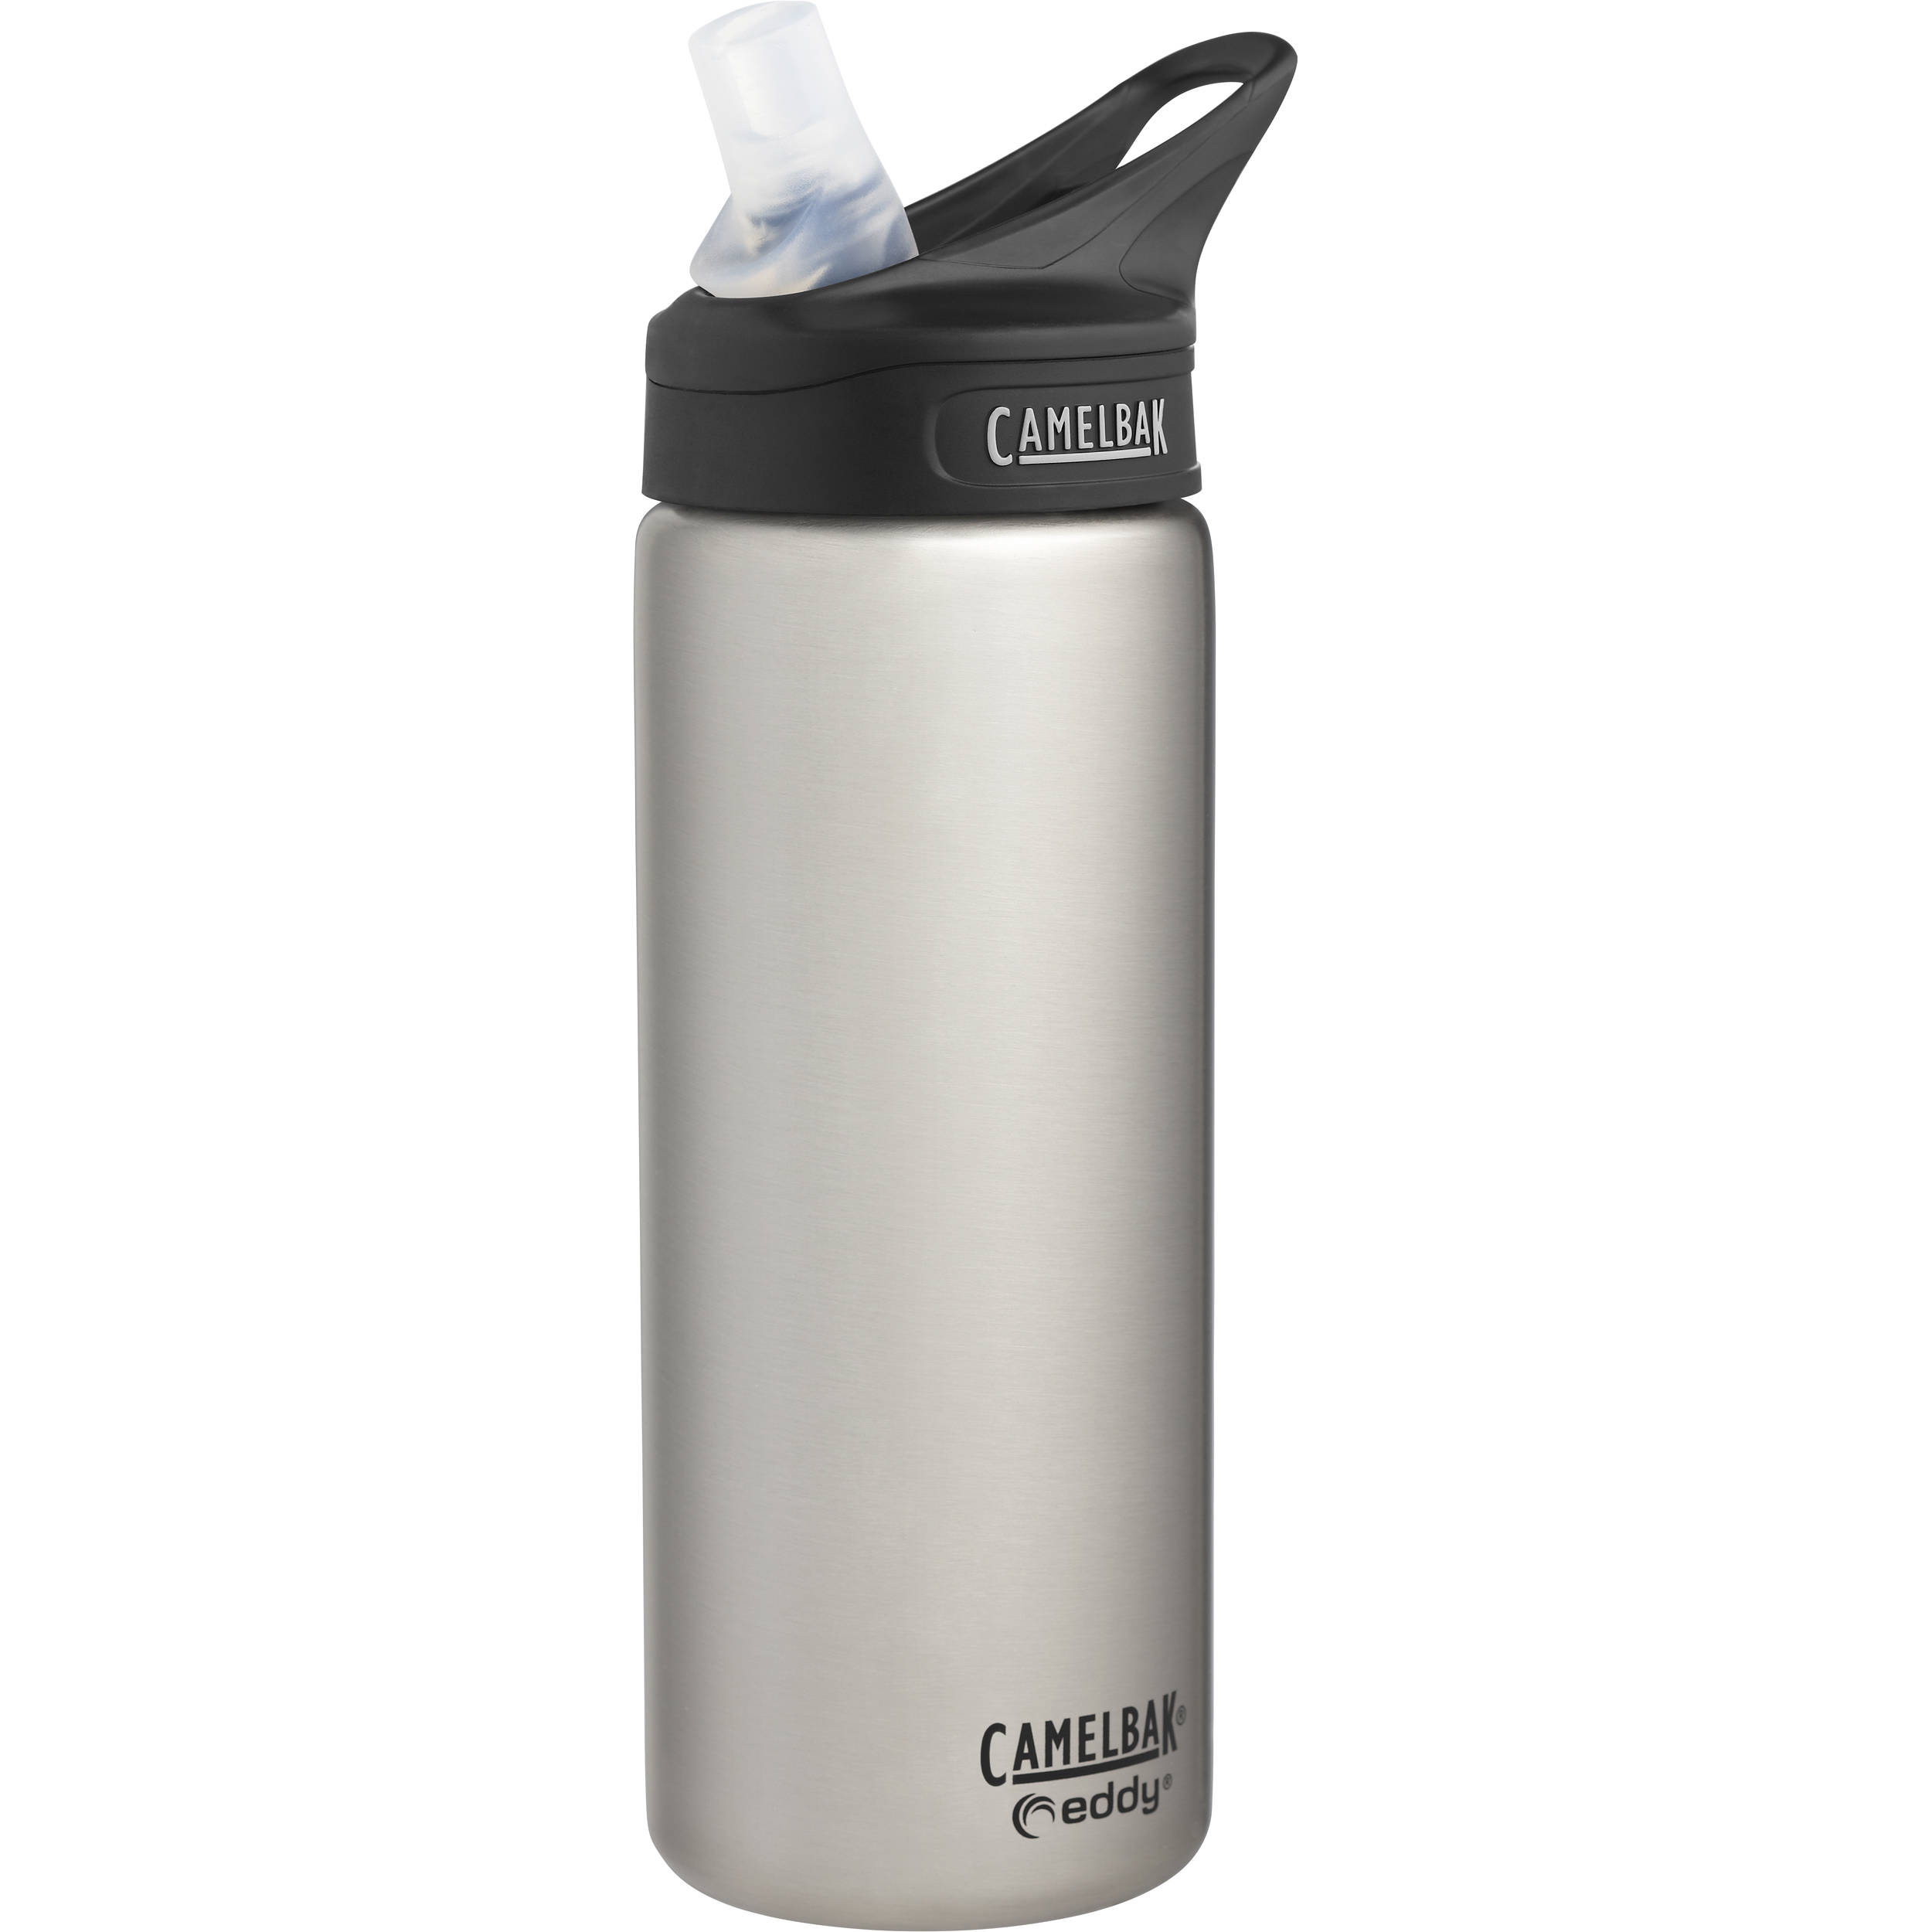 a65d7e3b63 CAMELBAK eddy Vacuum-Insulated Stainless Steel Water Bottle (20 fl oz,  Stainless)